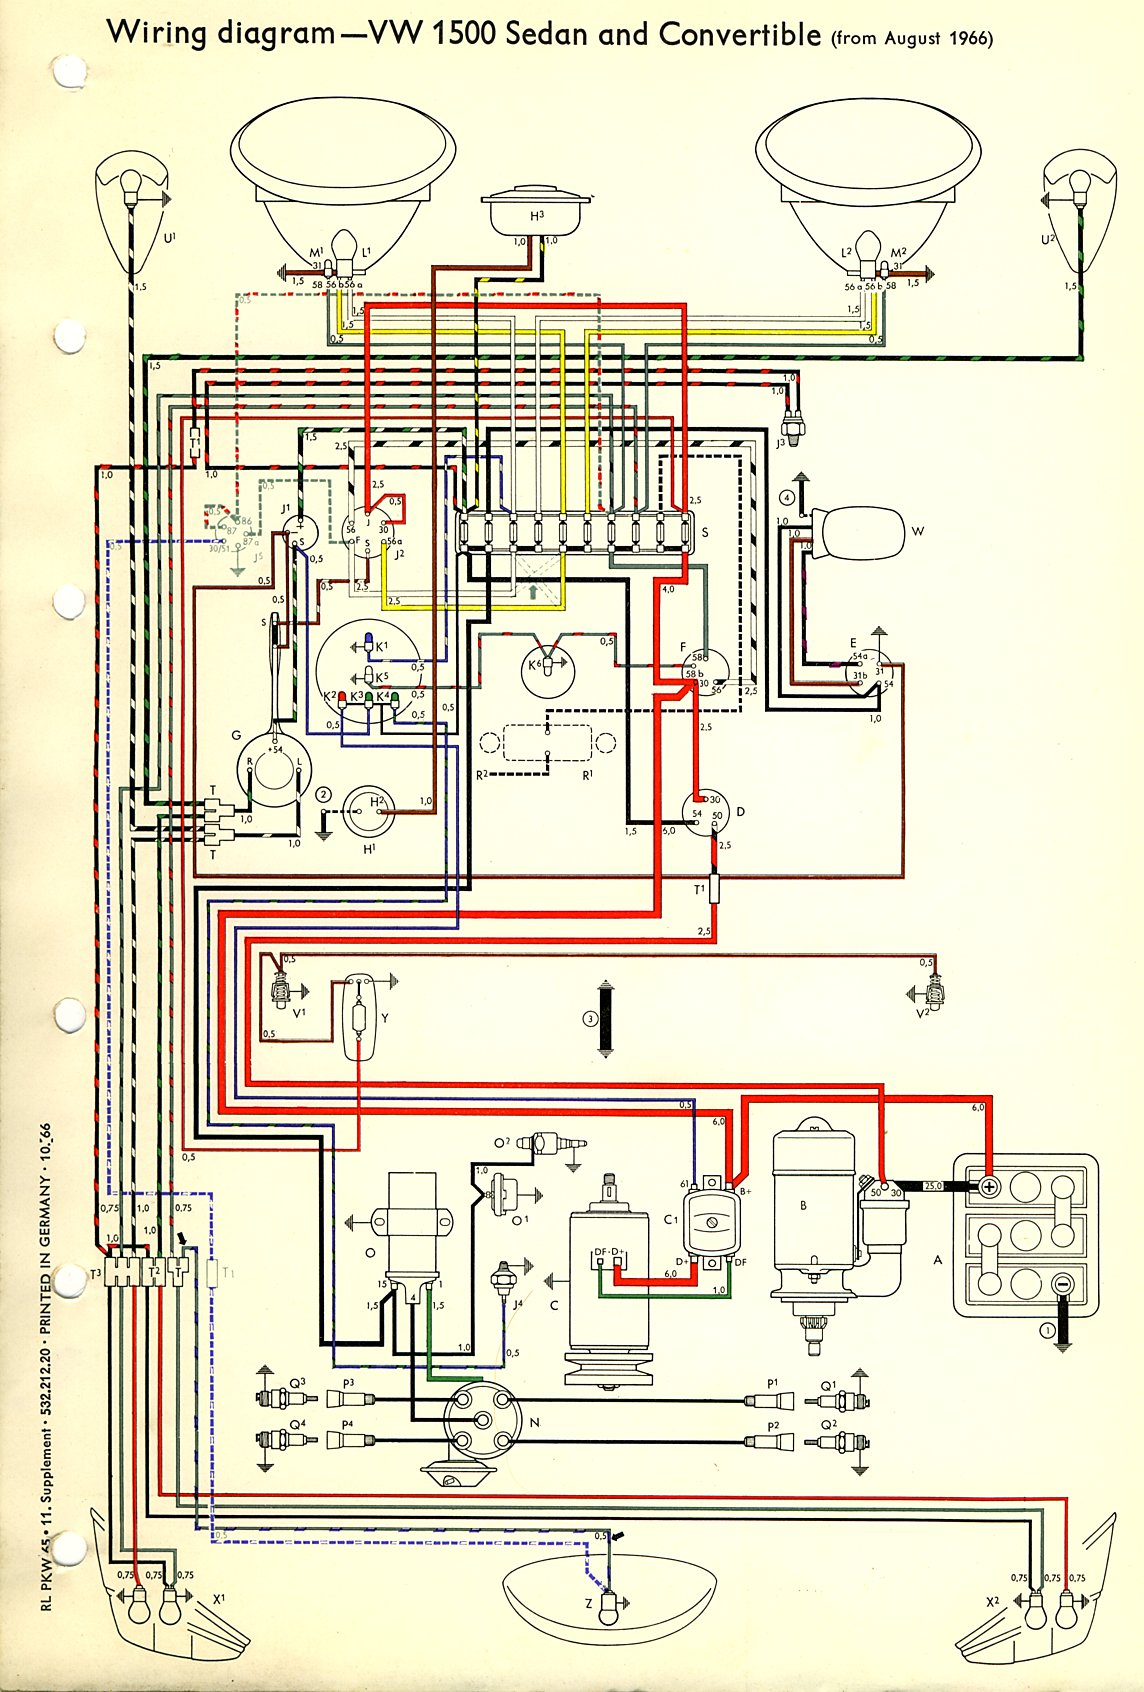 thesamba com type 1 wiring diagrams rh thesamba com 1973 volkswagen beetle wiring diagram 1973 vw super beetle wiring diagram